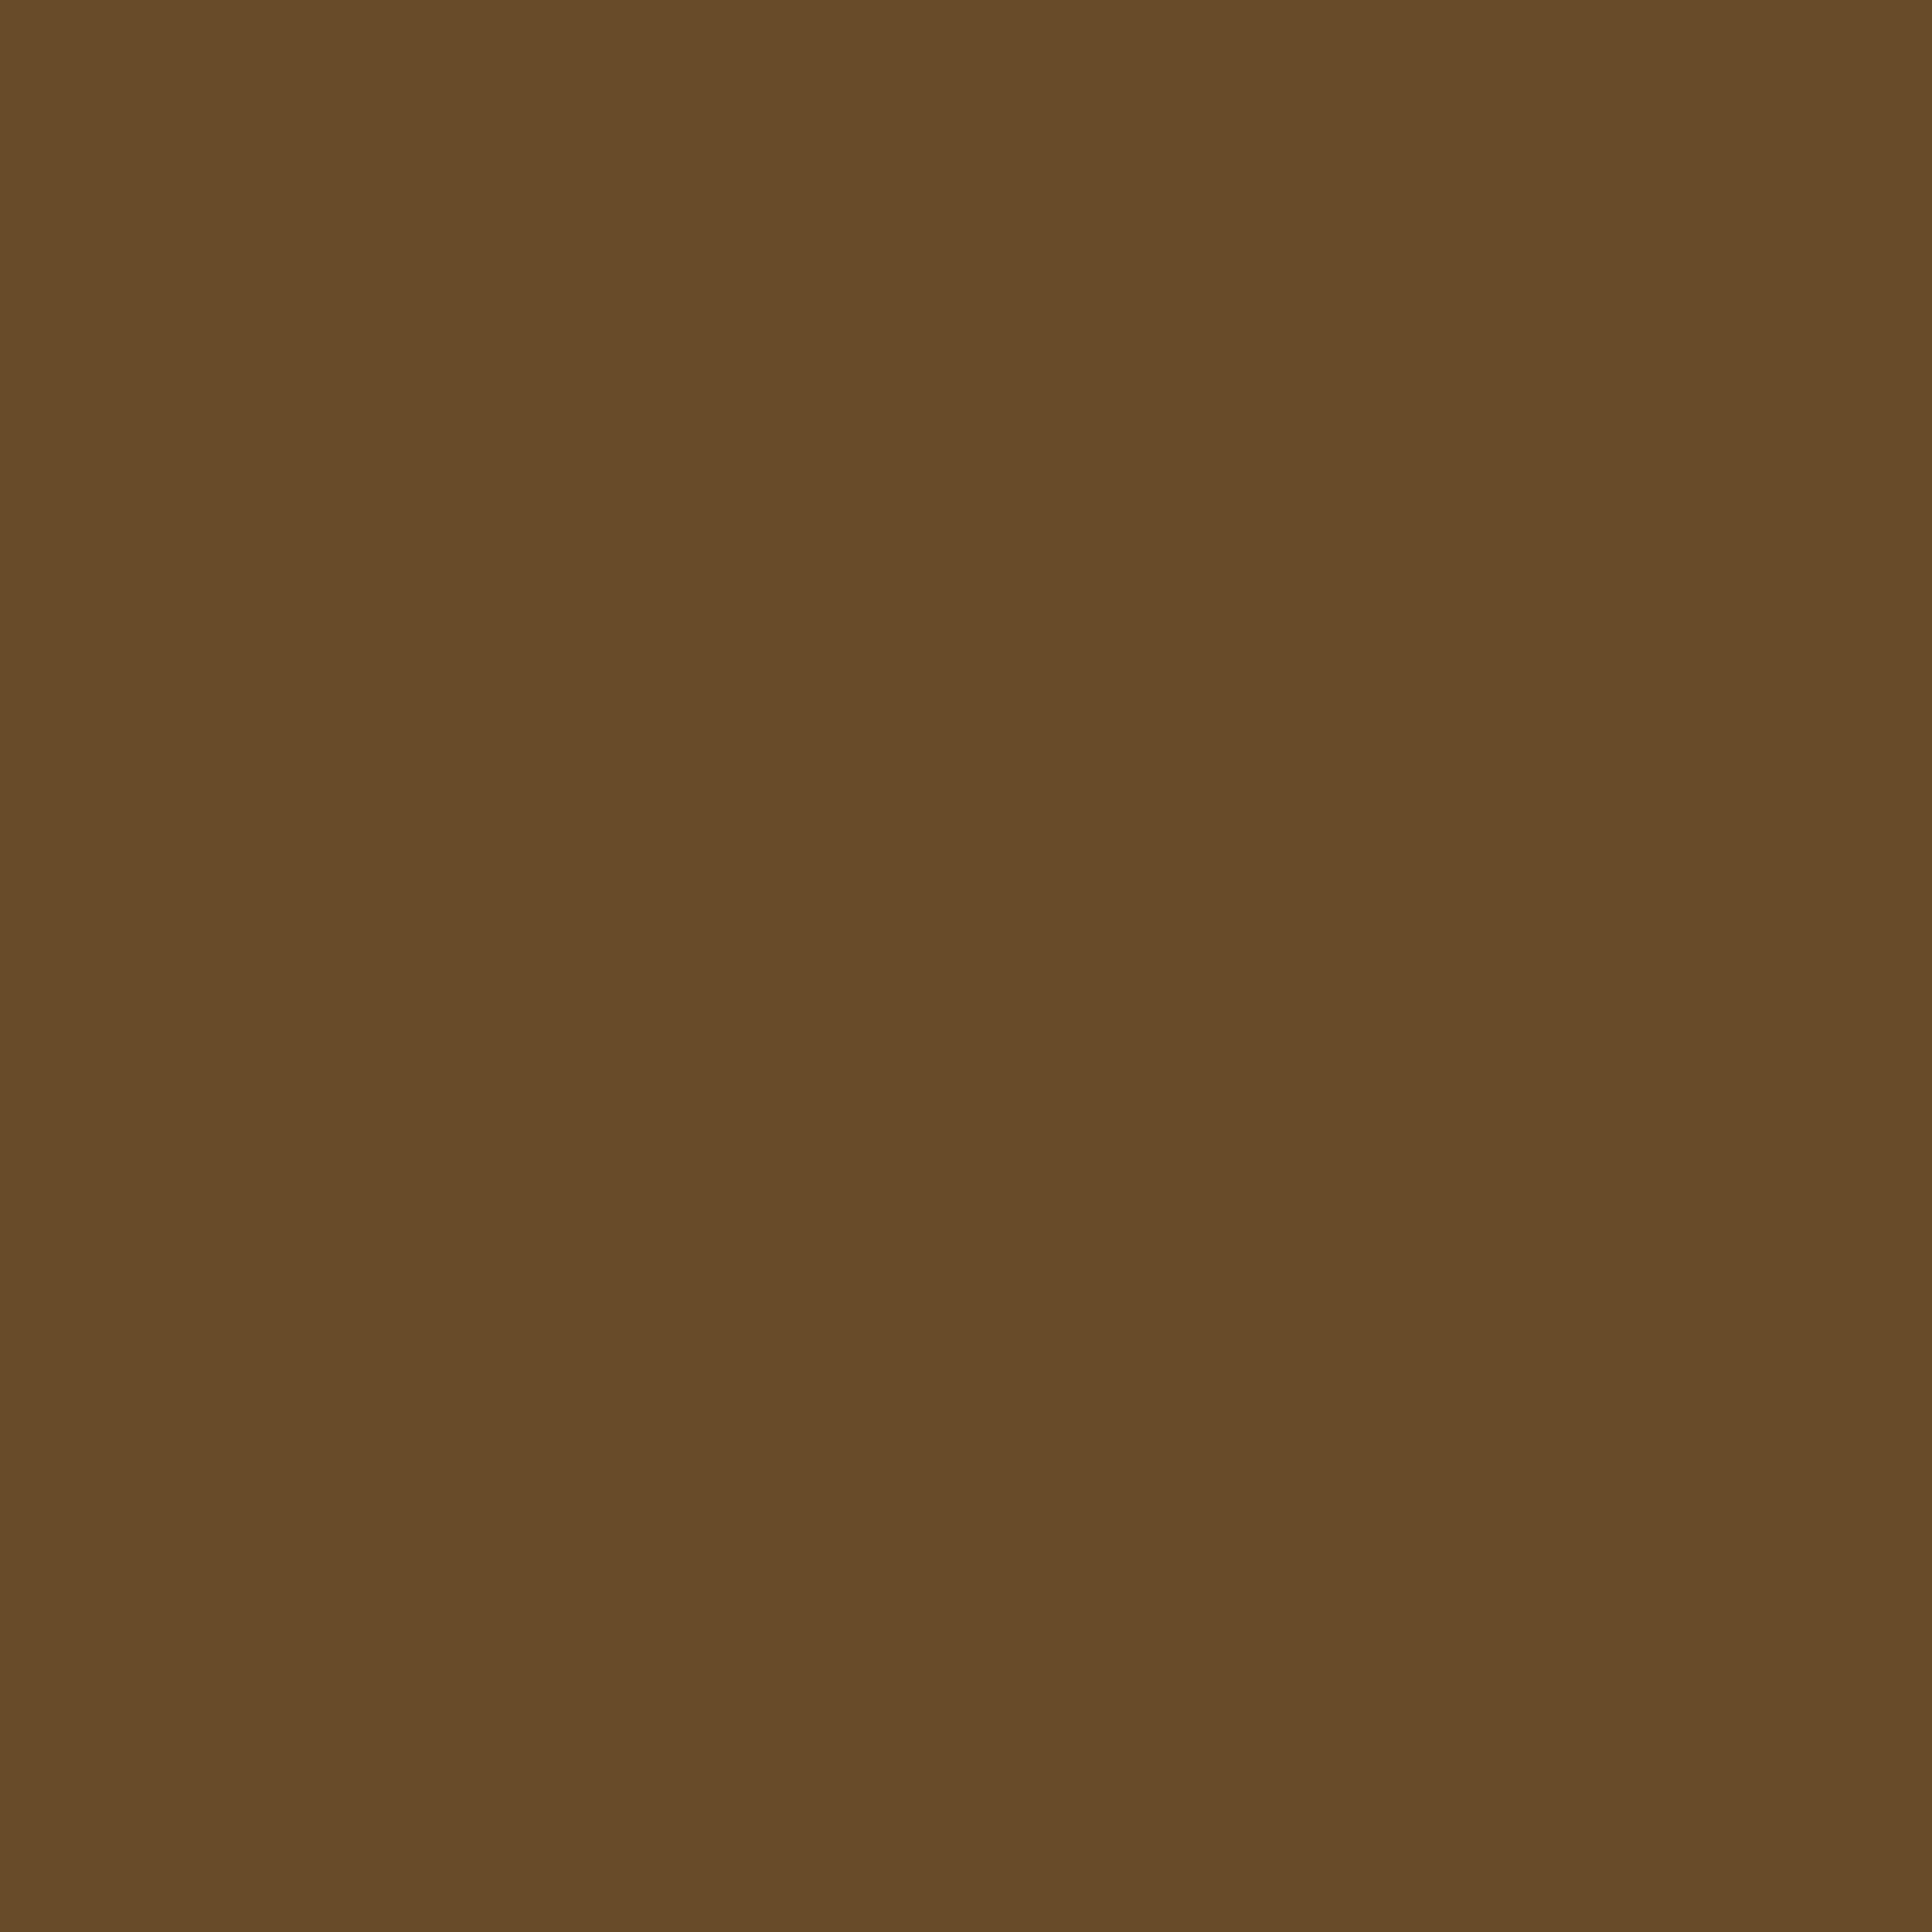 2732x2732 Donkey Brown Solid Color Background